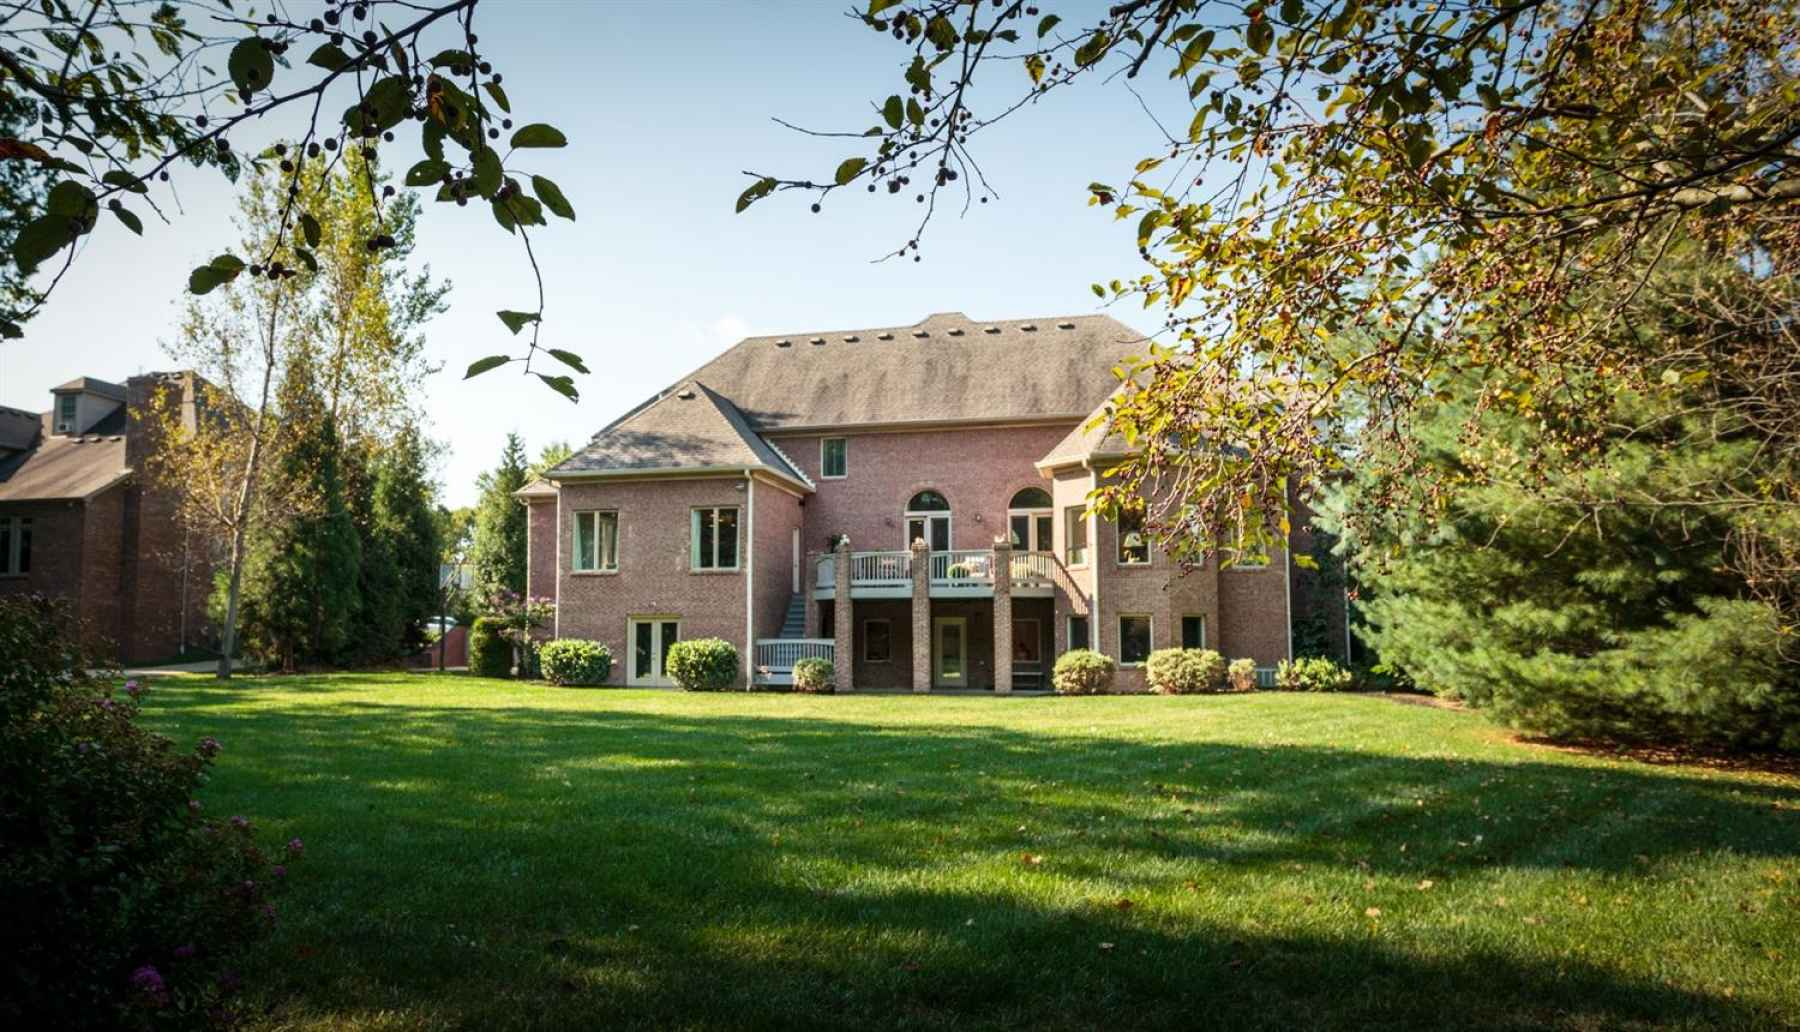 This home sits on 1.12 acres.